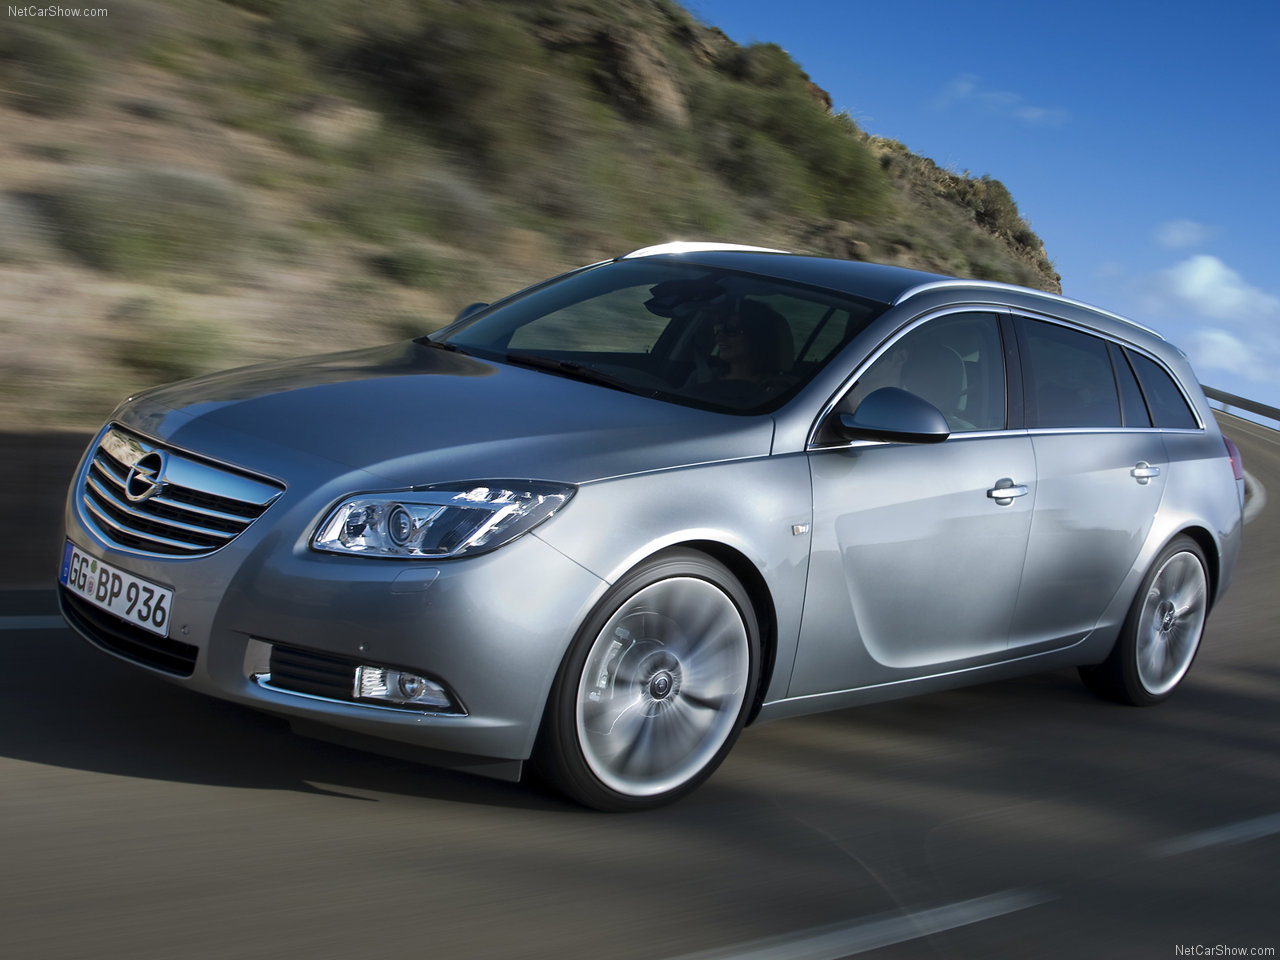 opel-insignia_sports_tourer-2010-1280-09.jpg